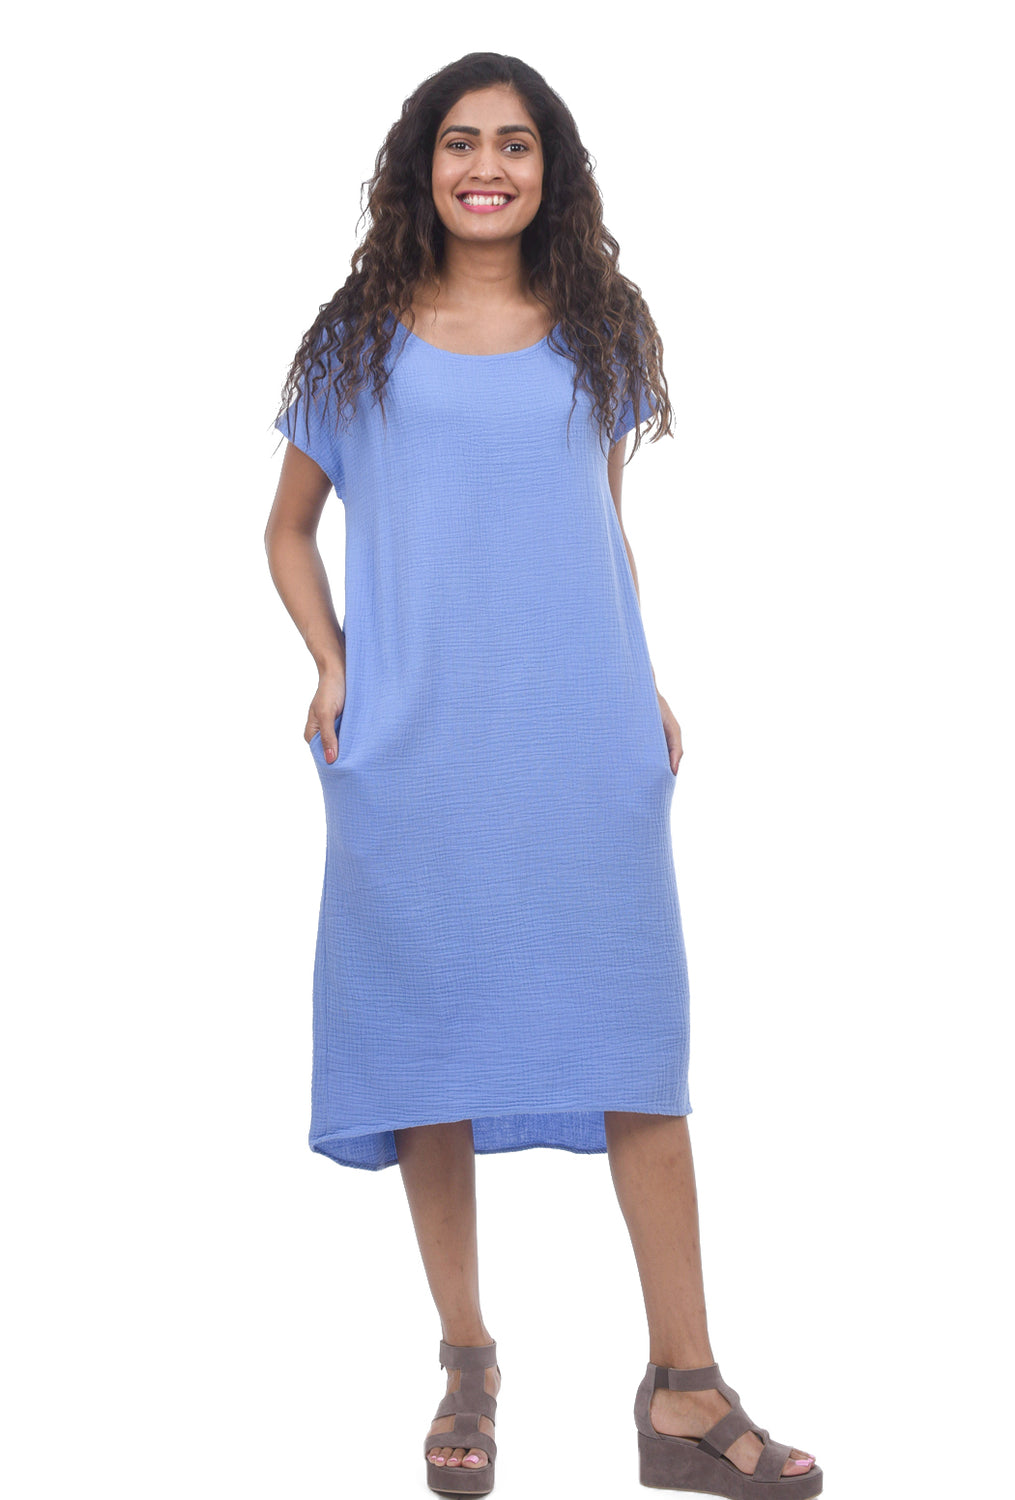 Filosofia Brooke Dress, Blue